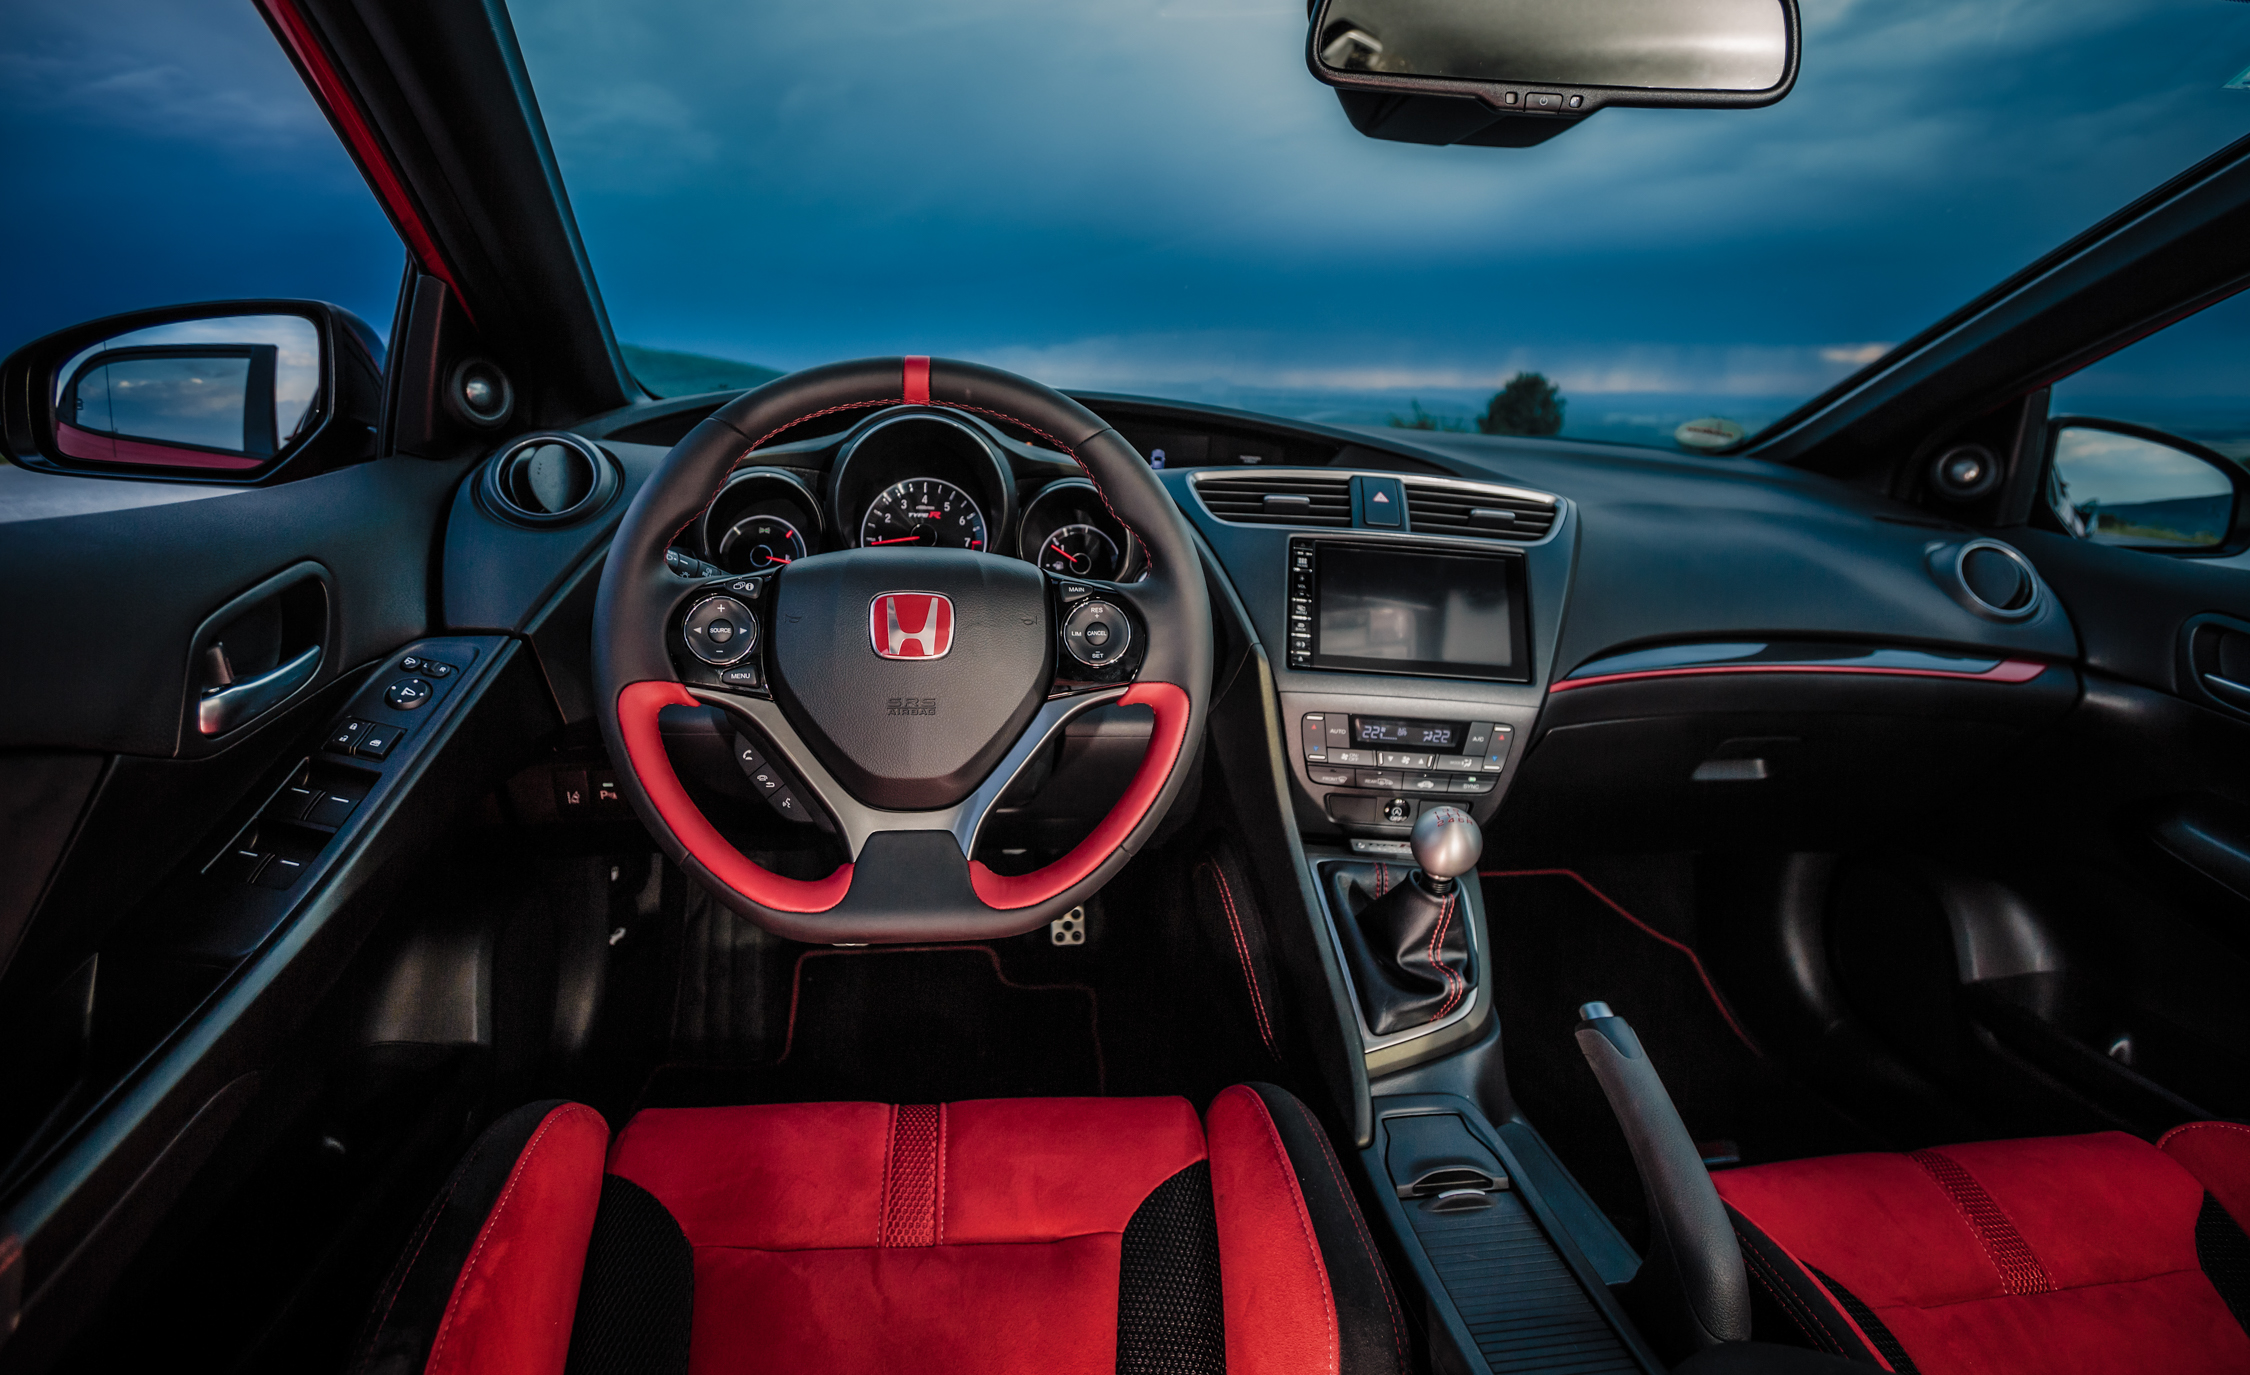 2015 honda civic type r overview 9196 cars performance. Black Bedroom Furniture Sets. Home Design Ideas